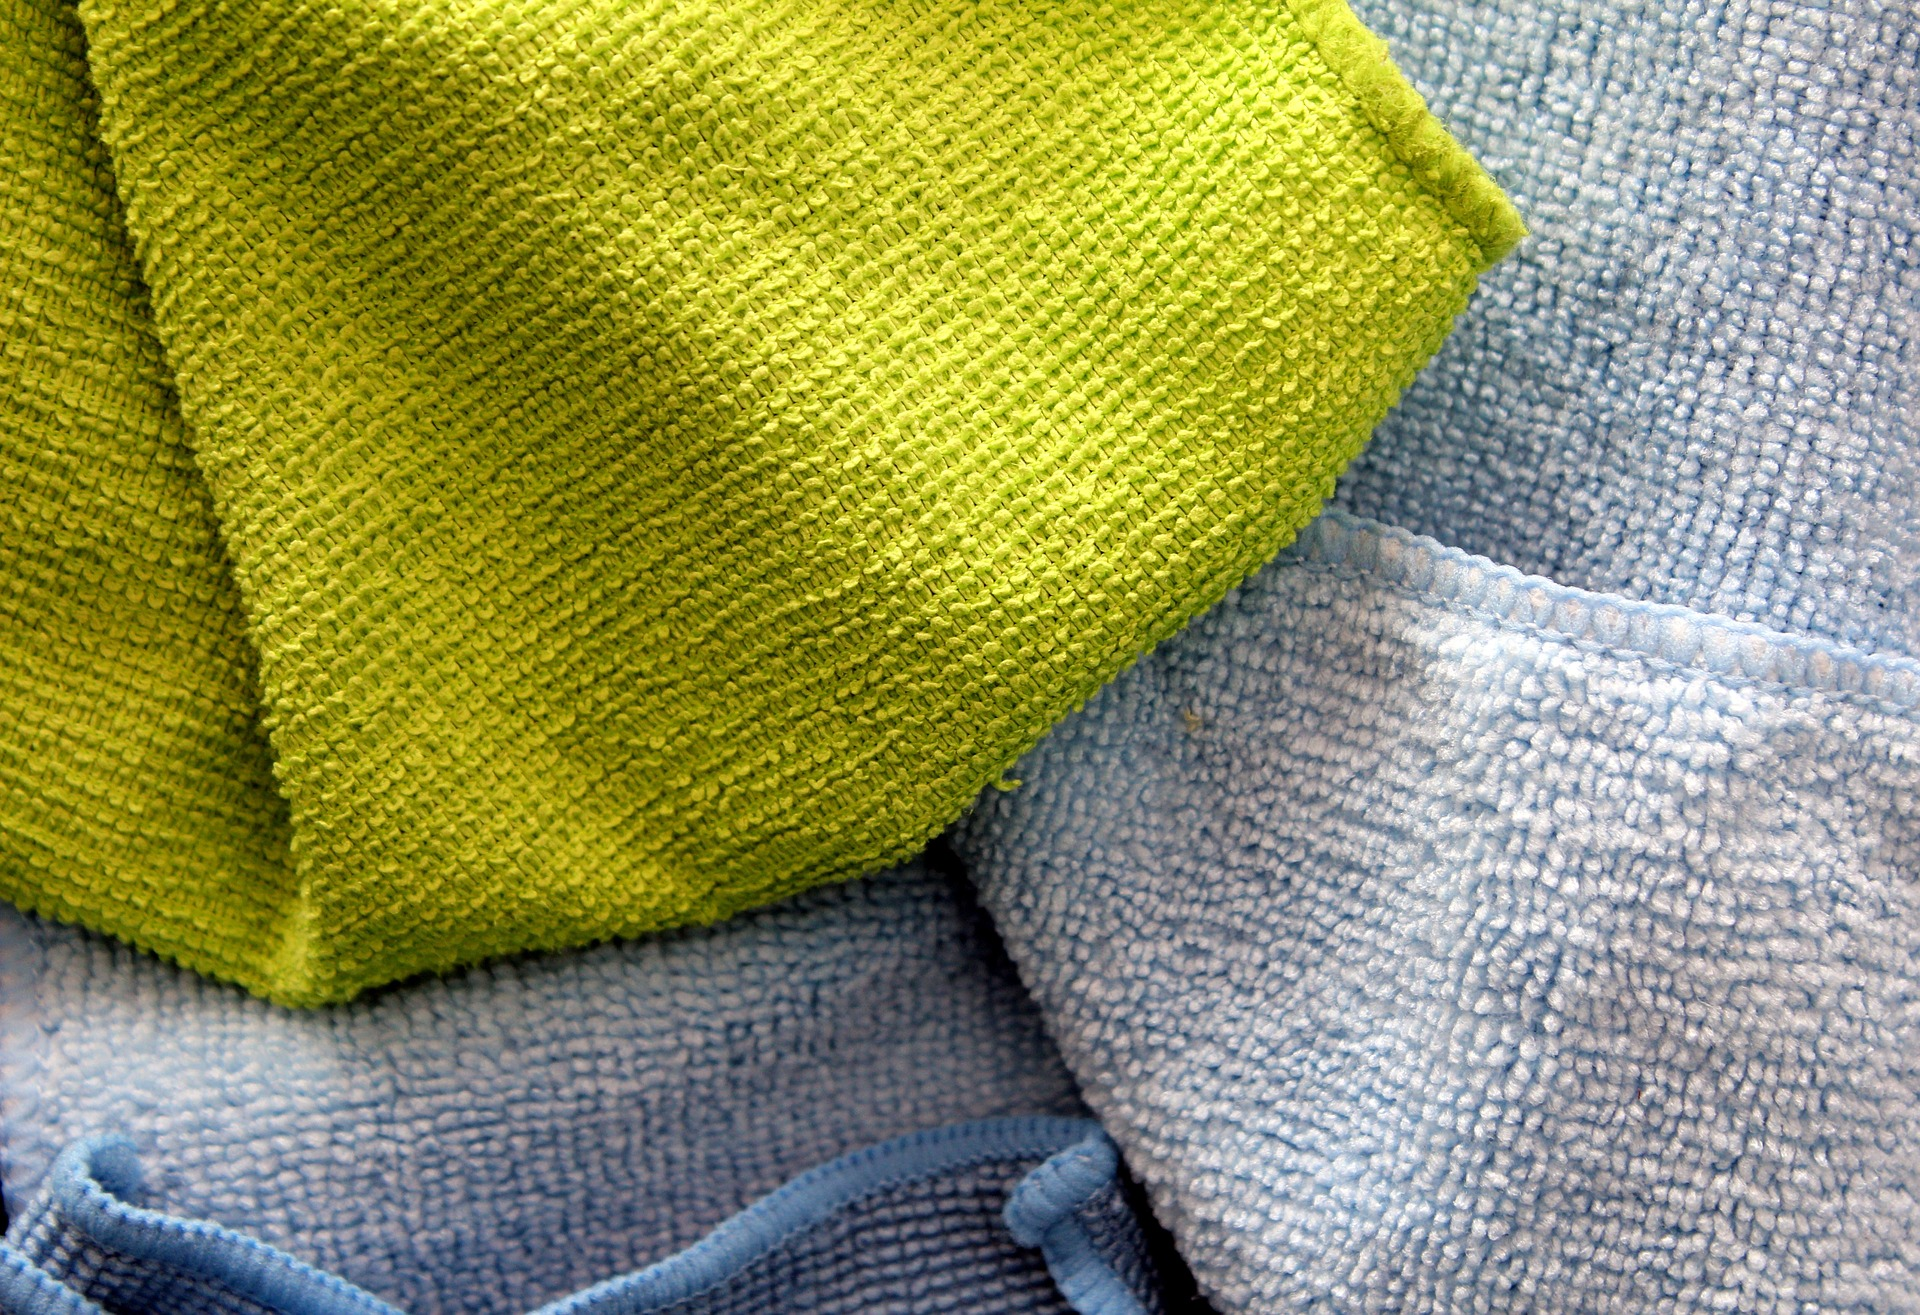 Microfiber Cleaning Cloth – An Environmentally Friendly Way to Clean Your House